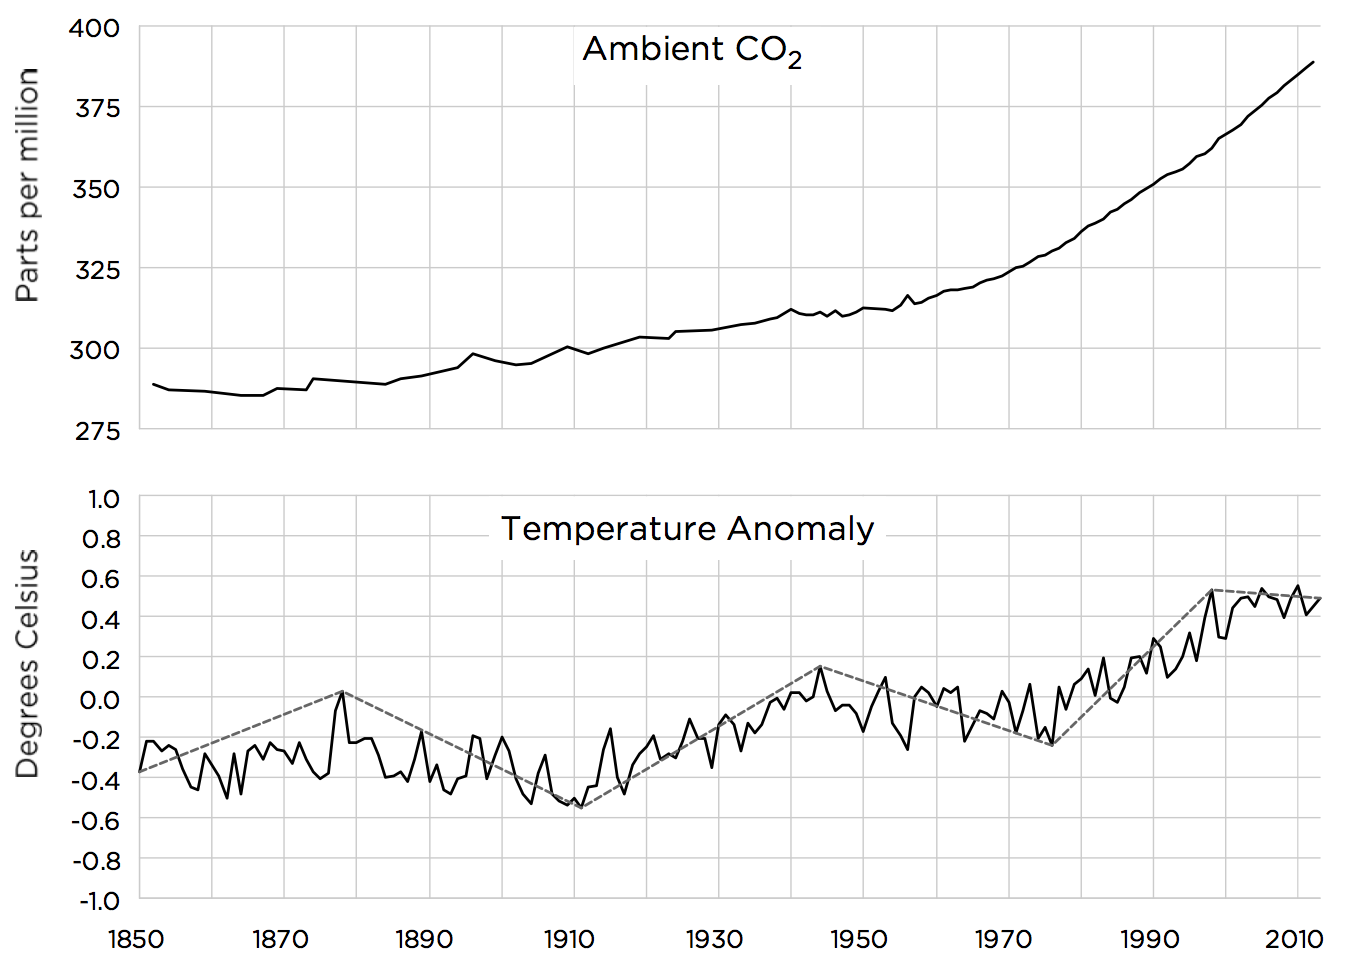 Sources: Met Office Hadley Centre HadCRUT4 dataset; Etheridge et al. (1998); Keeling et al. (2001); MacFarling Meure et al. (2006); Merged IceCore Record Data, Scripps Institution of Oceanography